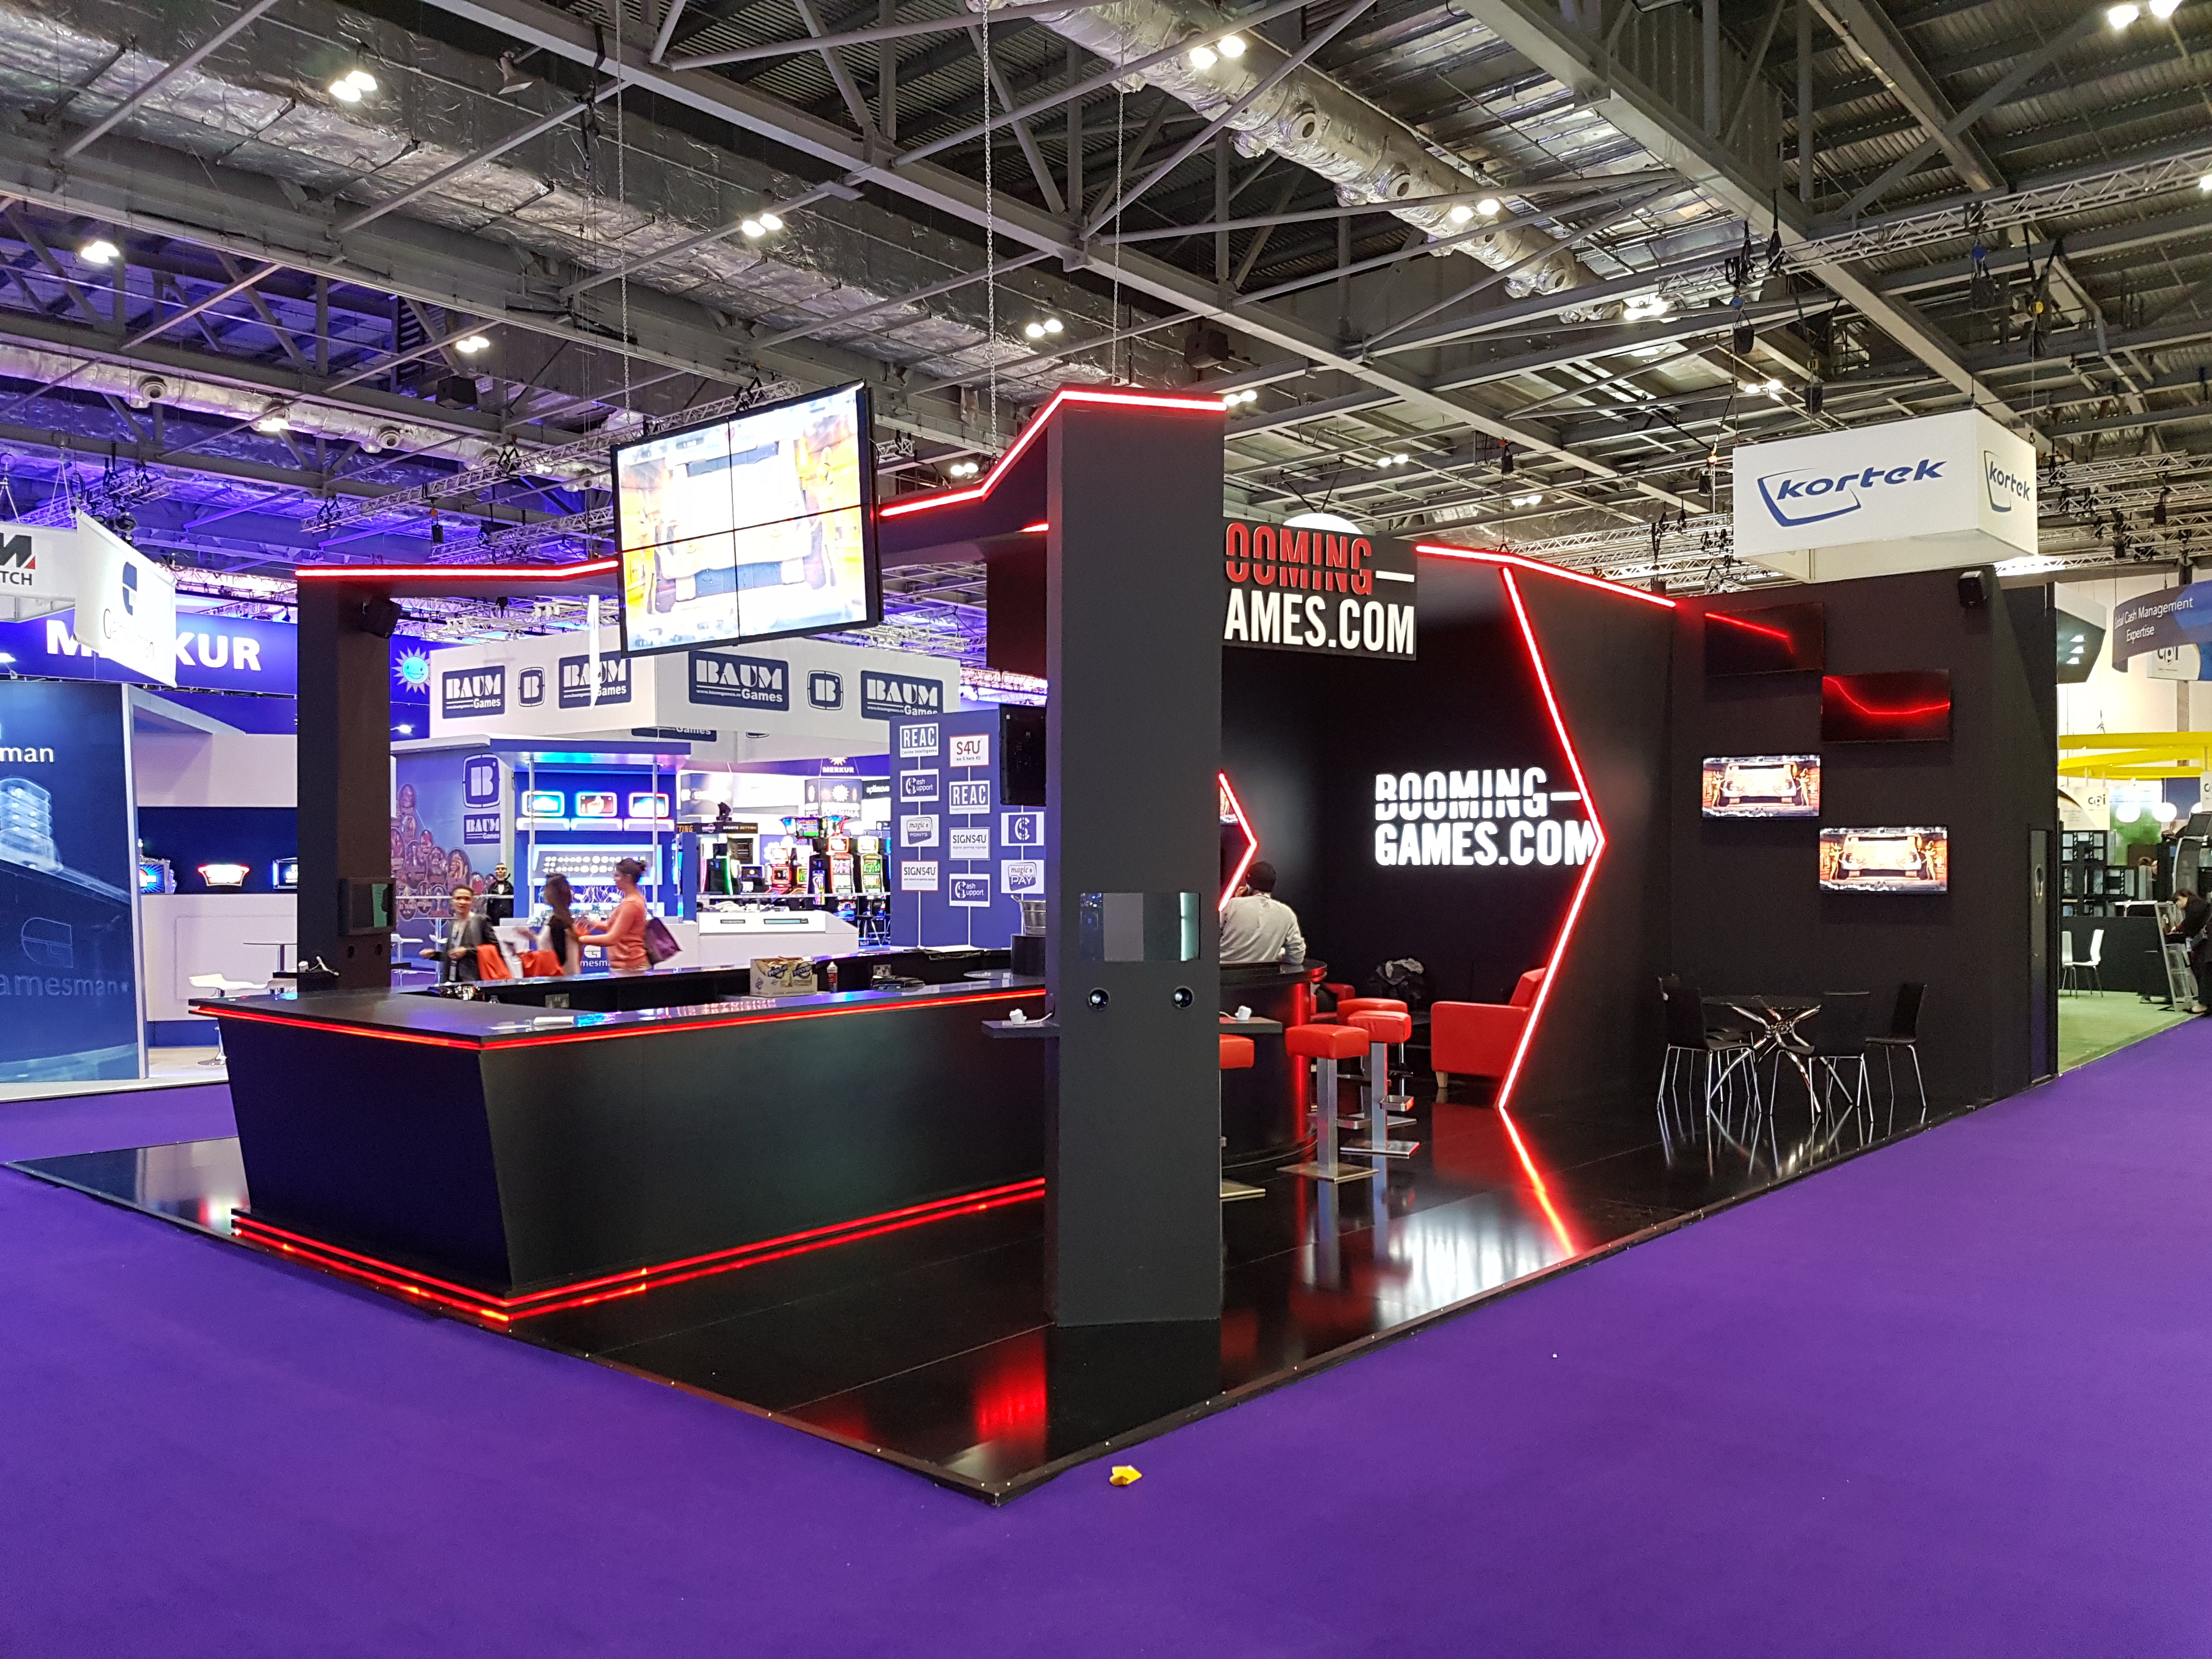 Exhibition Stand Games : Booming games @ ice london expose designs : exhibition stands